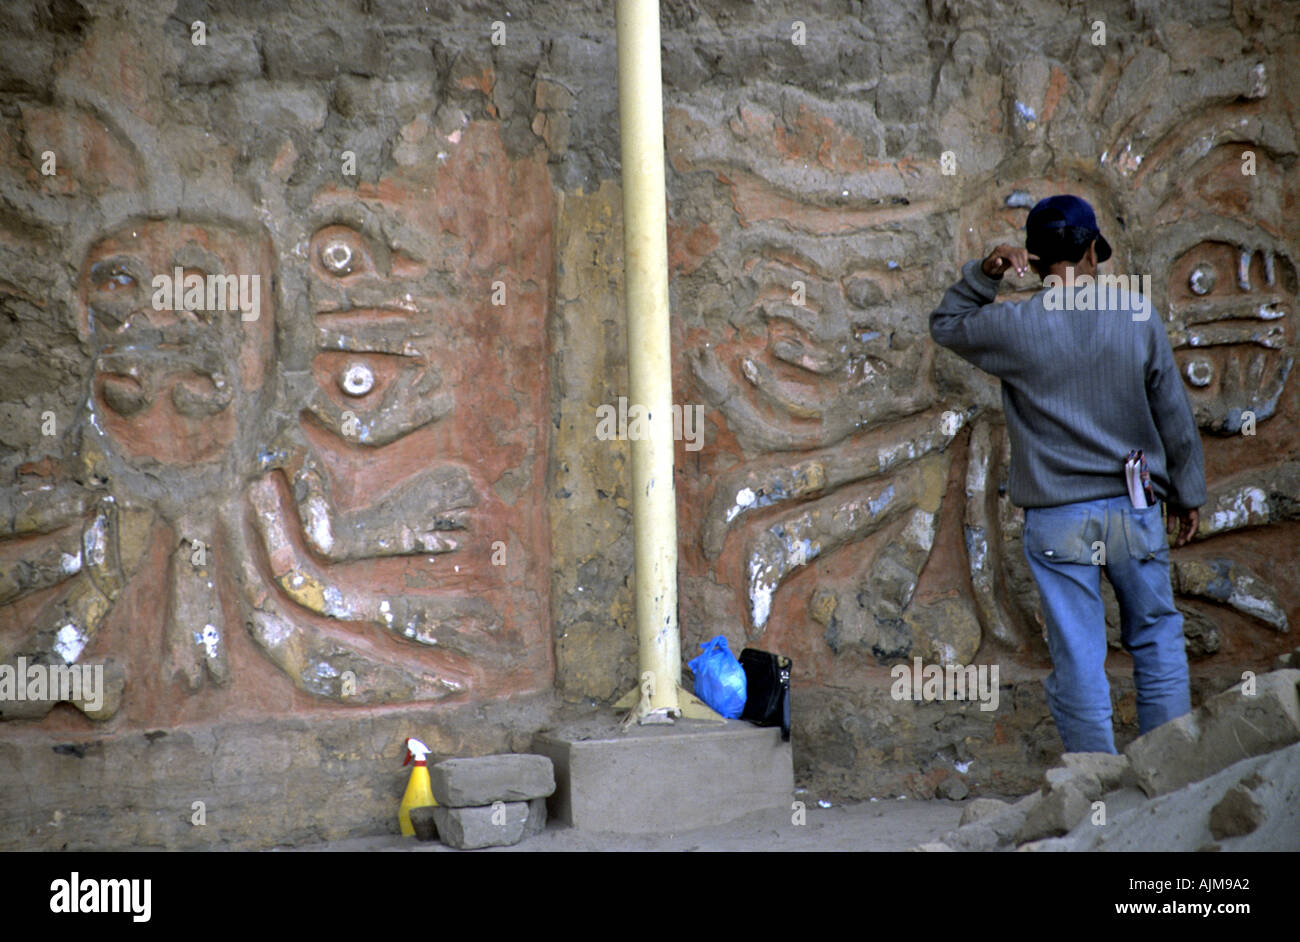 Who is a archeologist that came from South America?